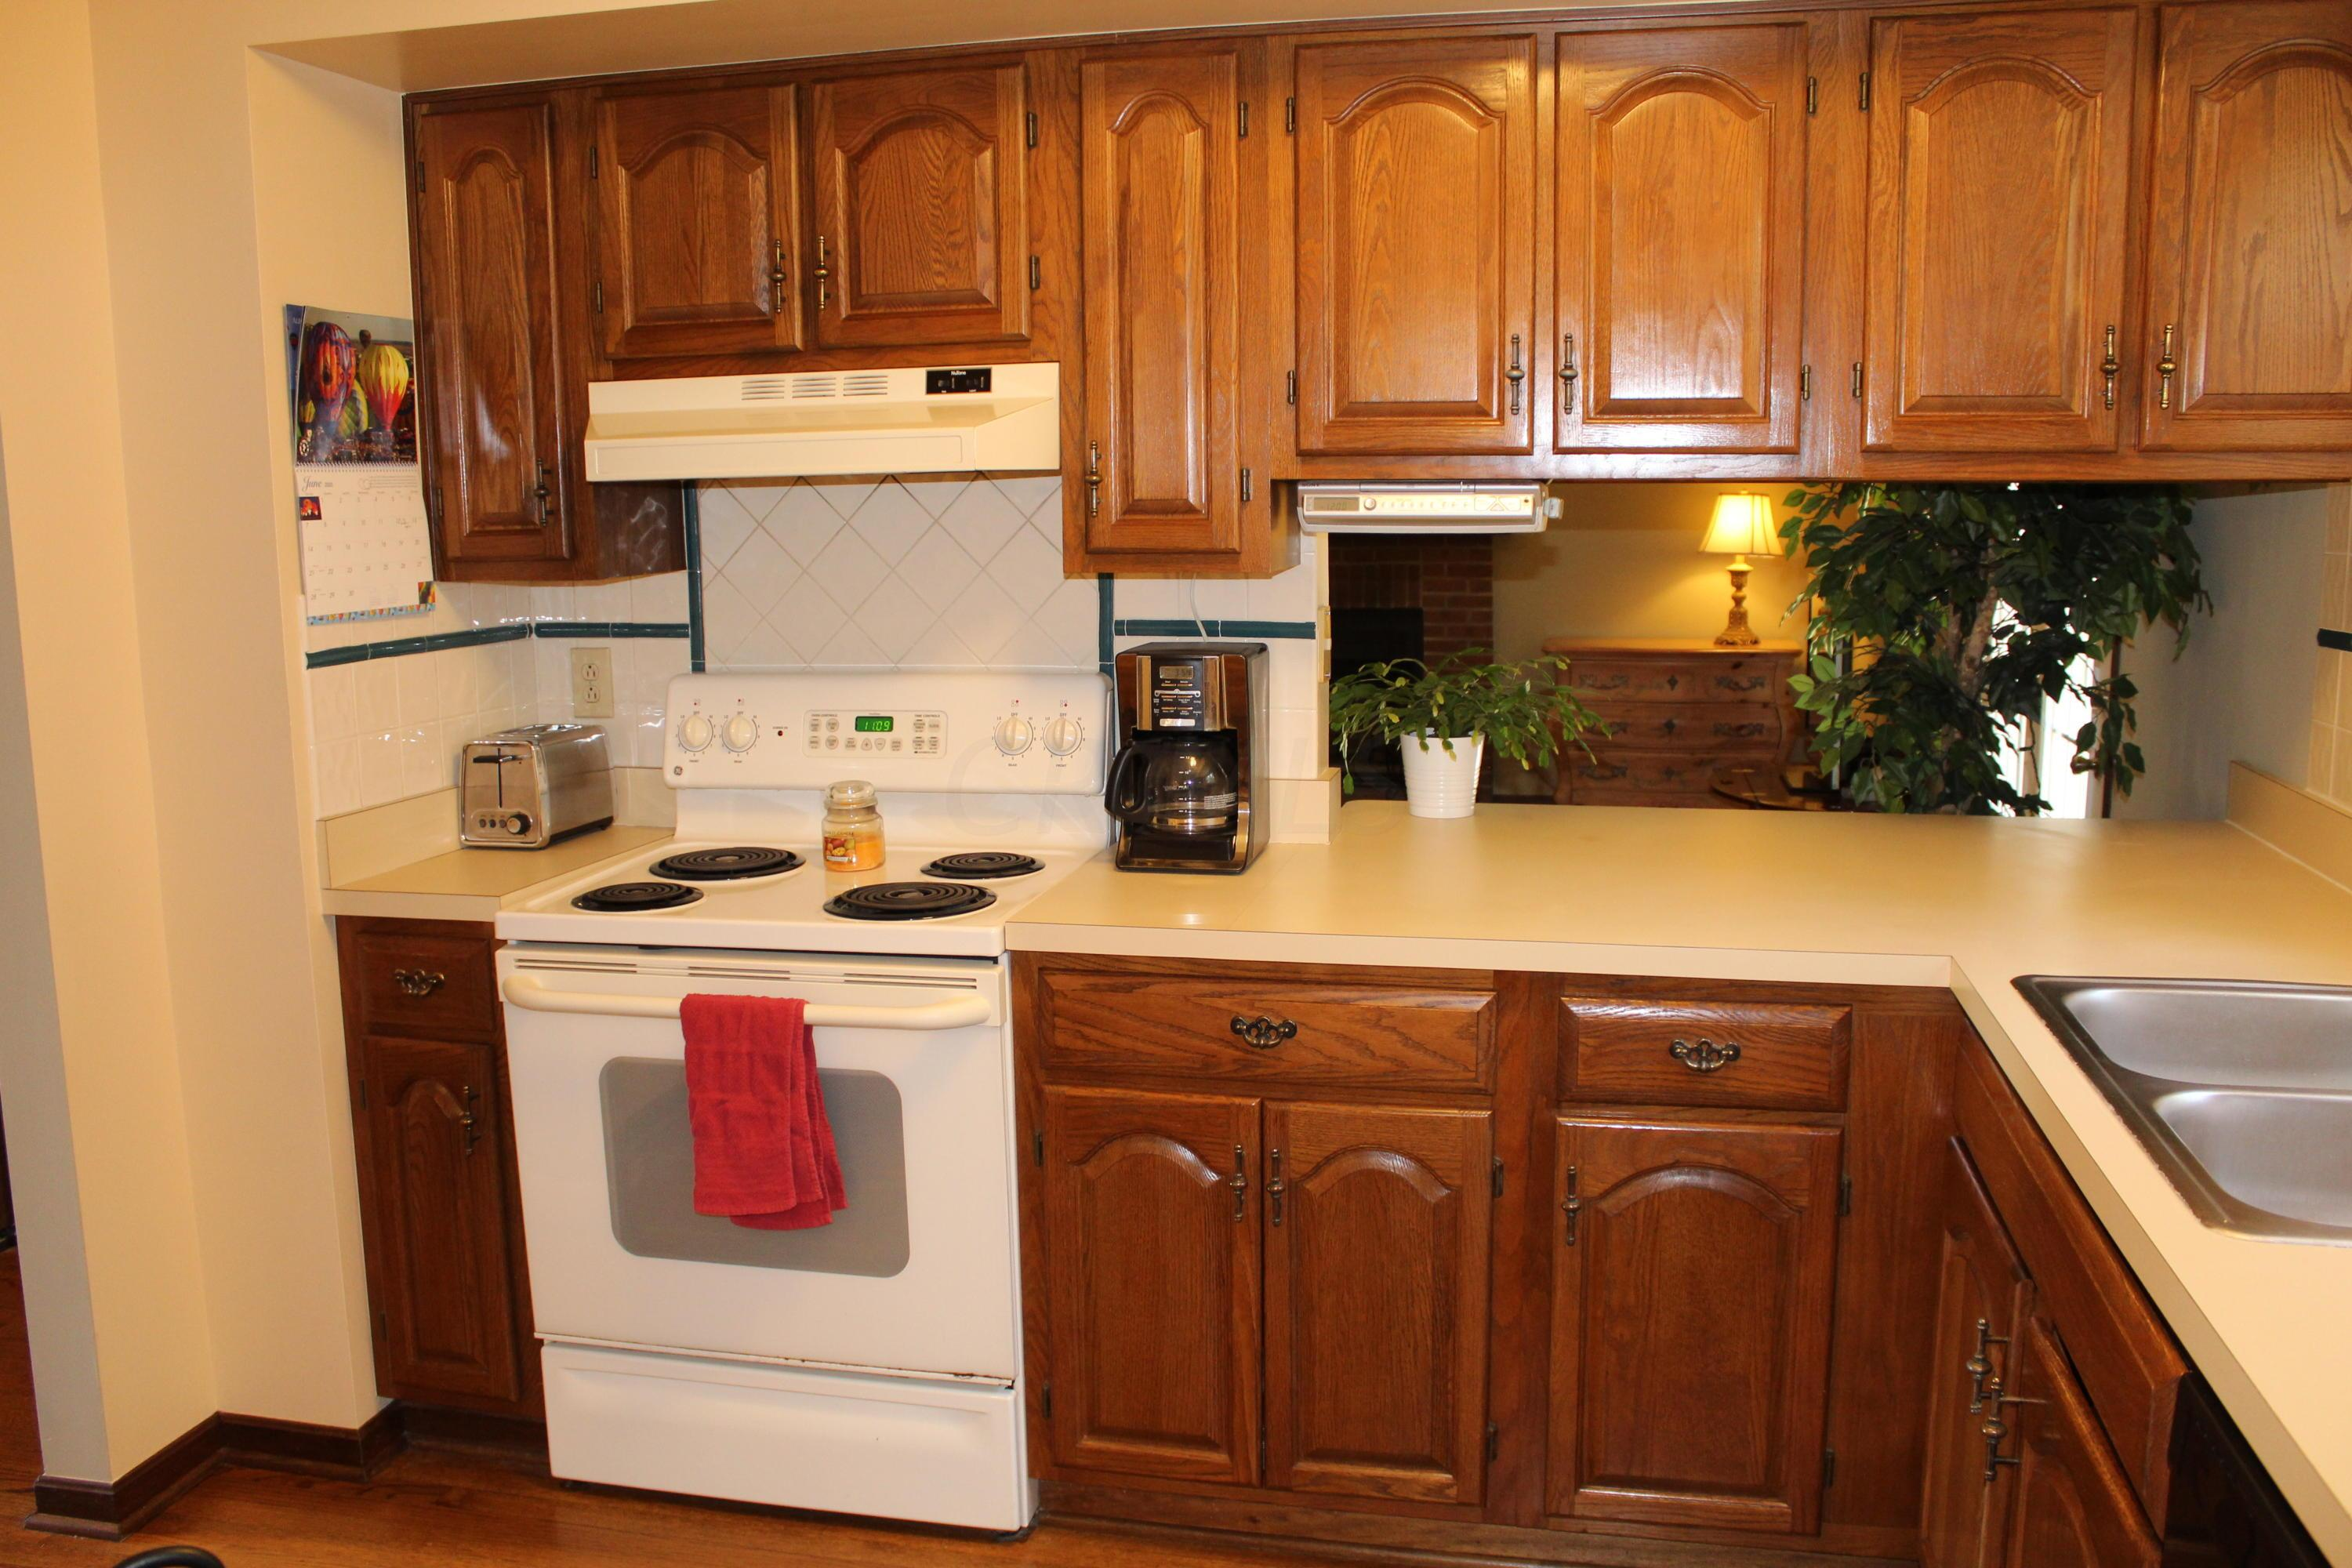 3565 Berry Pond Court, Canal Winchester, Ohio 43110, 4 Bedrooms Bedrooms, ,3 BathroomsBathrooms,Residential,For Sale,Berry Pond,220020993